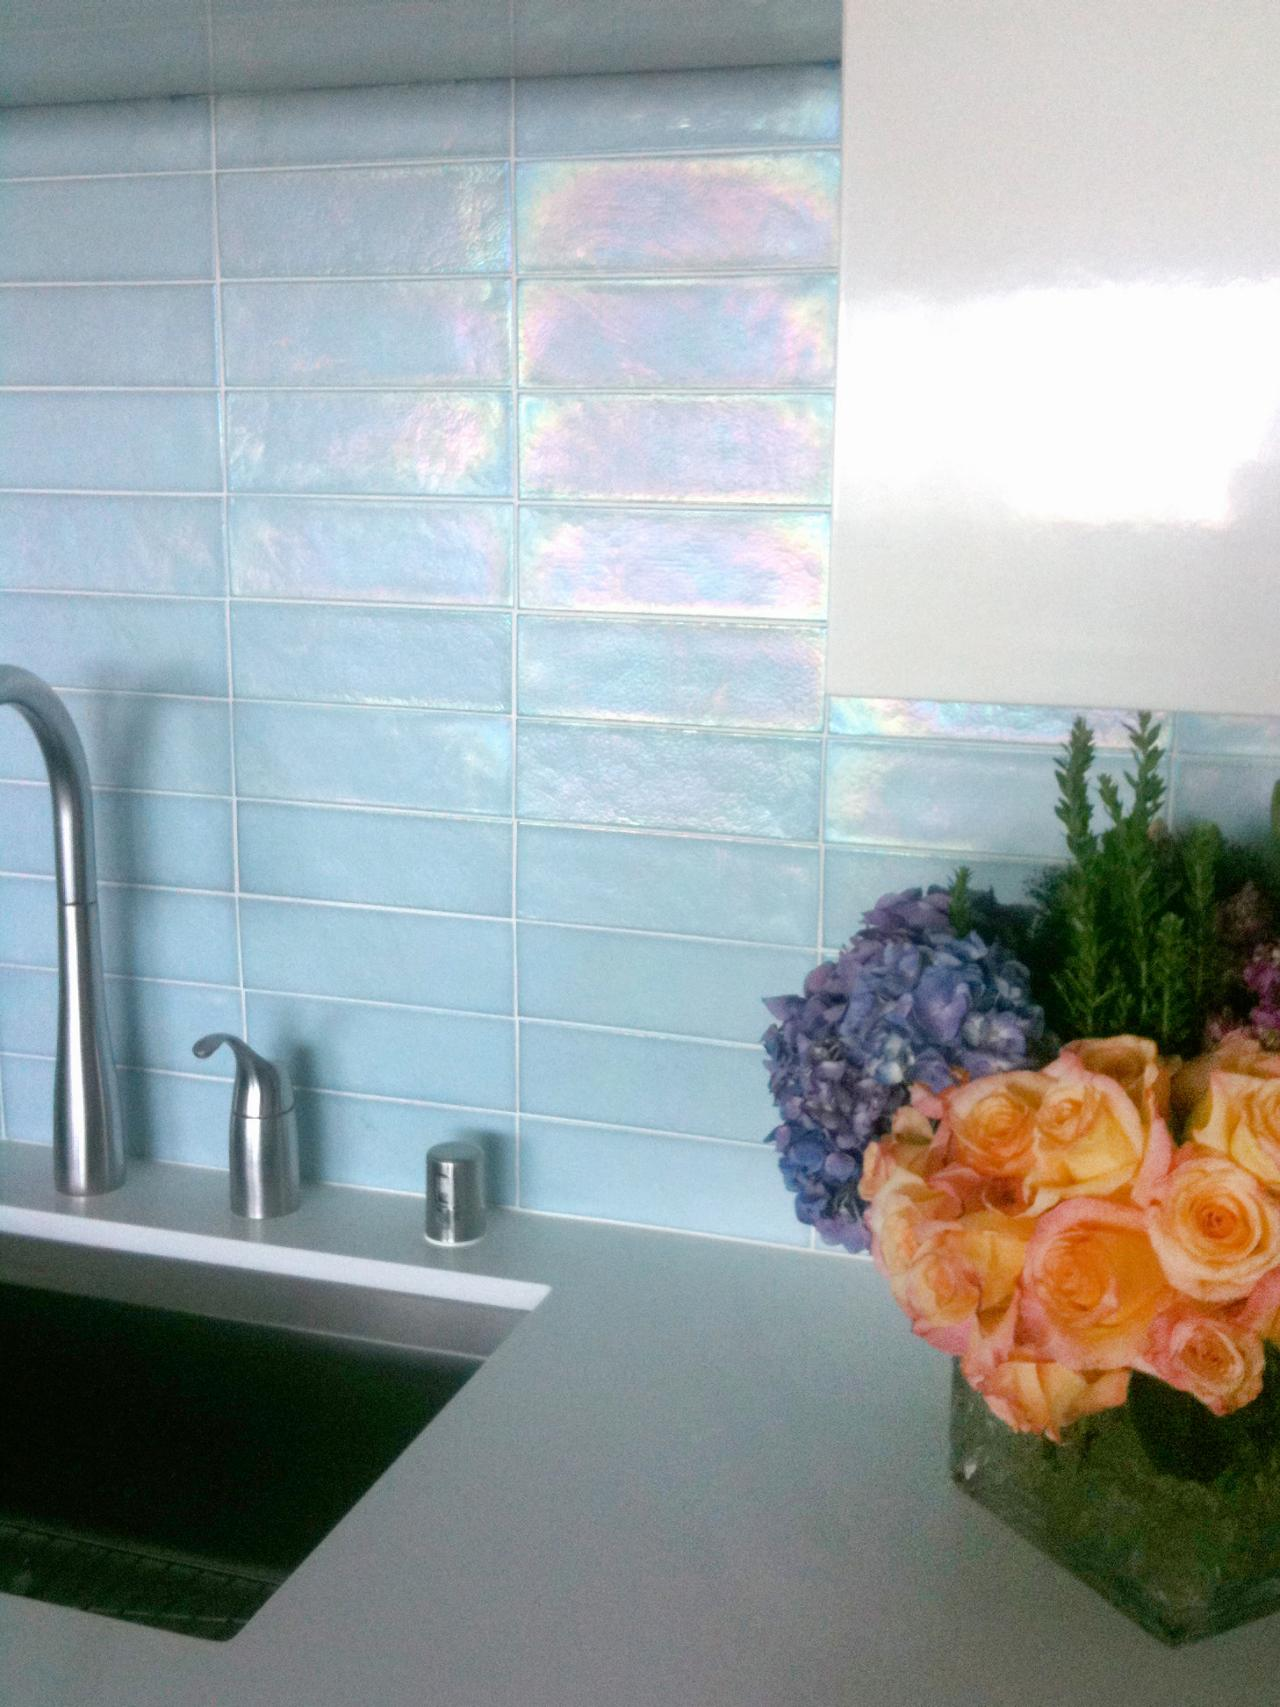 Kitchen Update: Add a Glass Tile Backsplash | HGTV